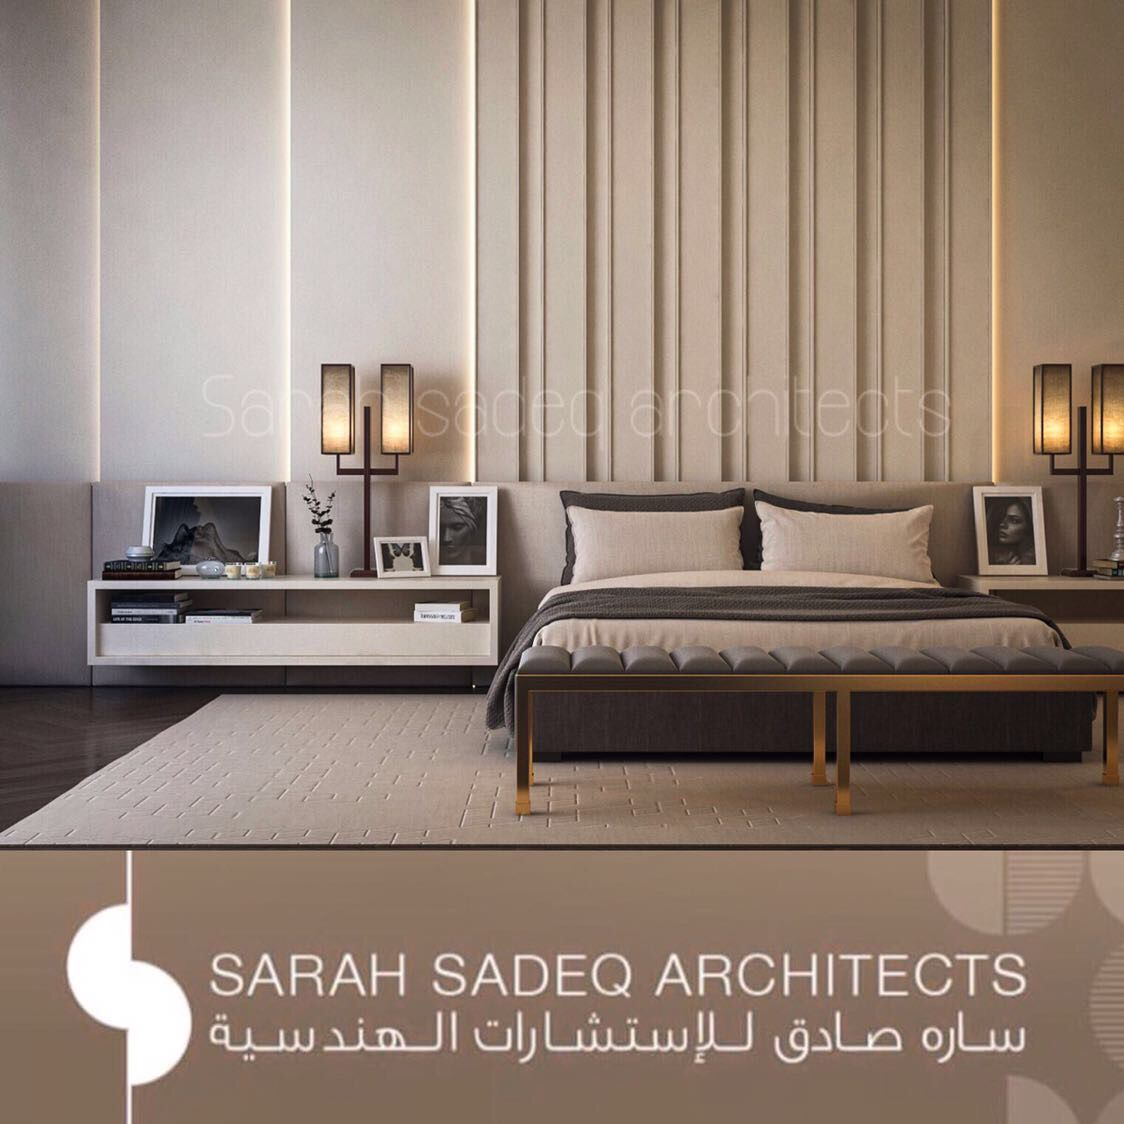 Private Villa Sarah Sadeq Architects Kuwait: Private Villa Interior , Sarah Sadeq Architects . Kuwait